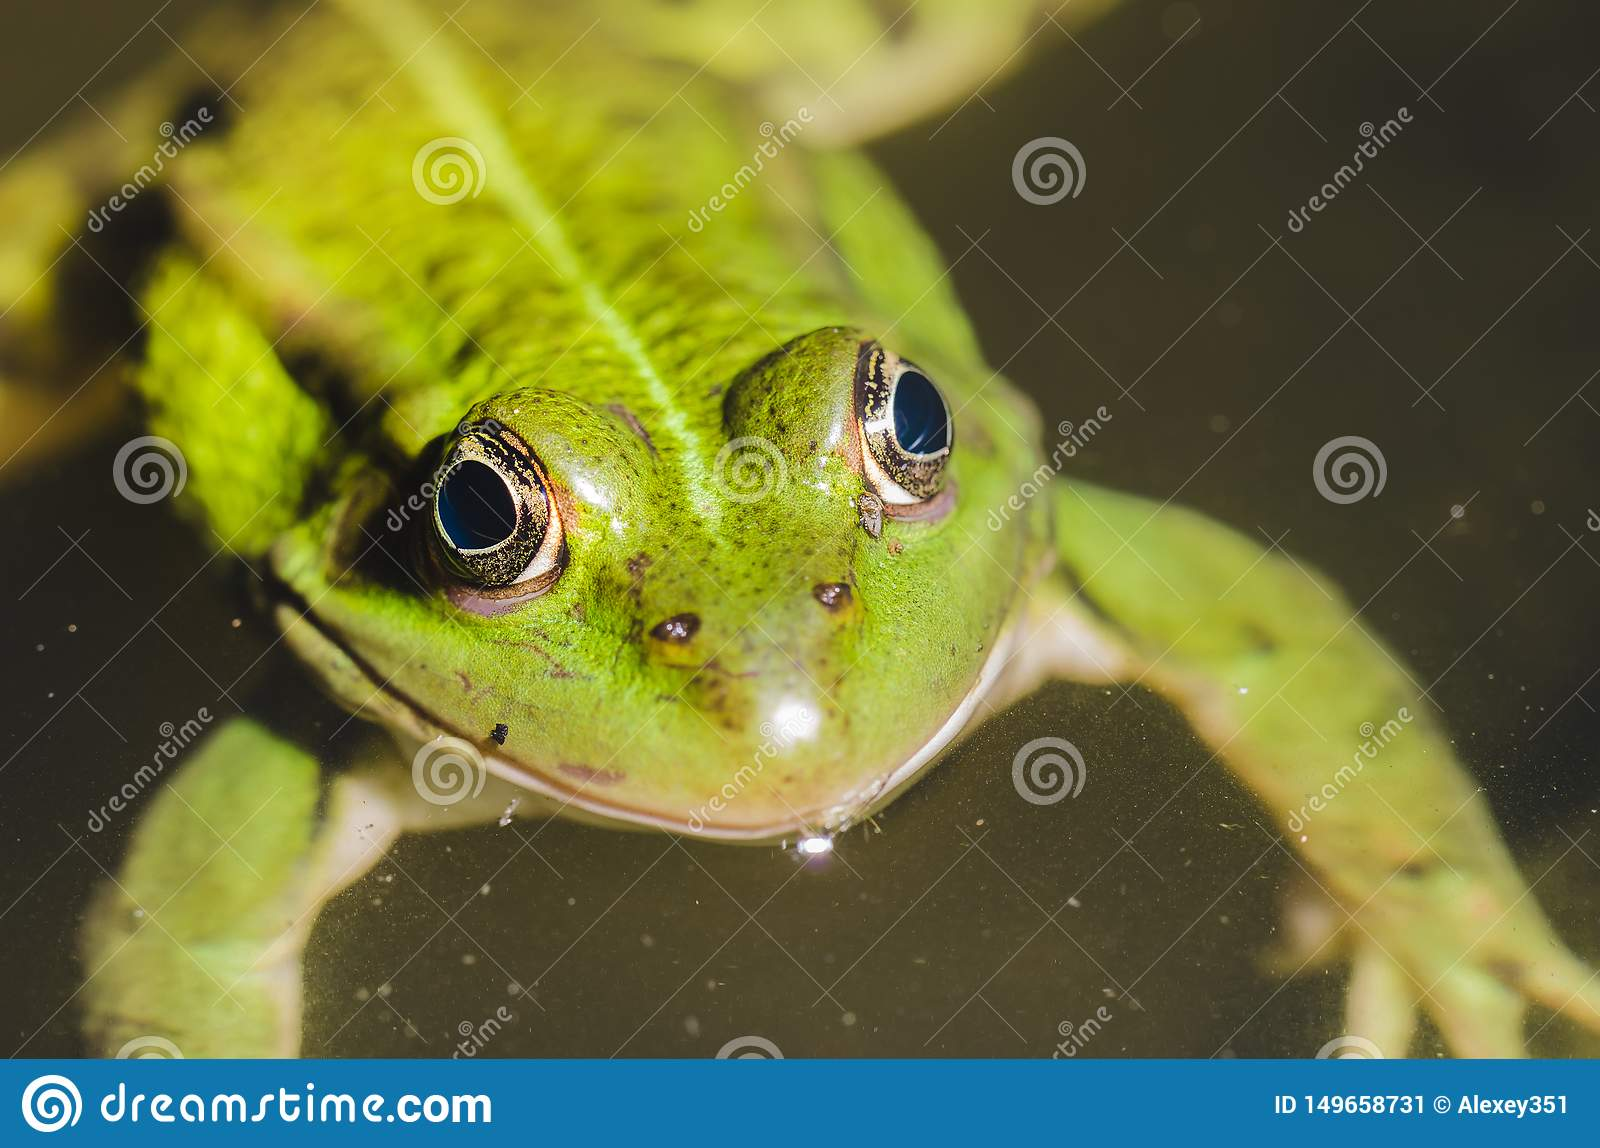 Green frog close up on water/green frog close up on water, top view